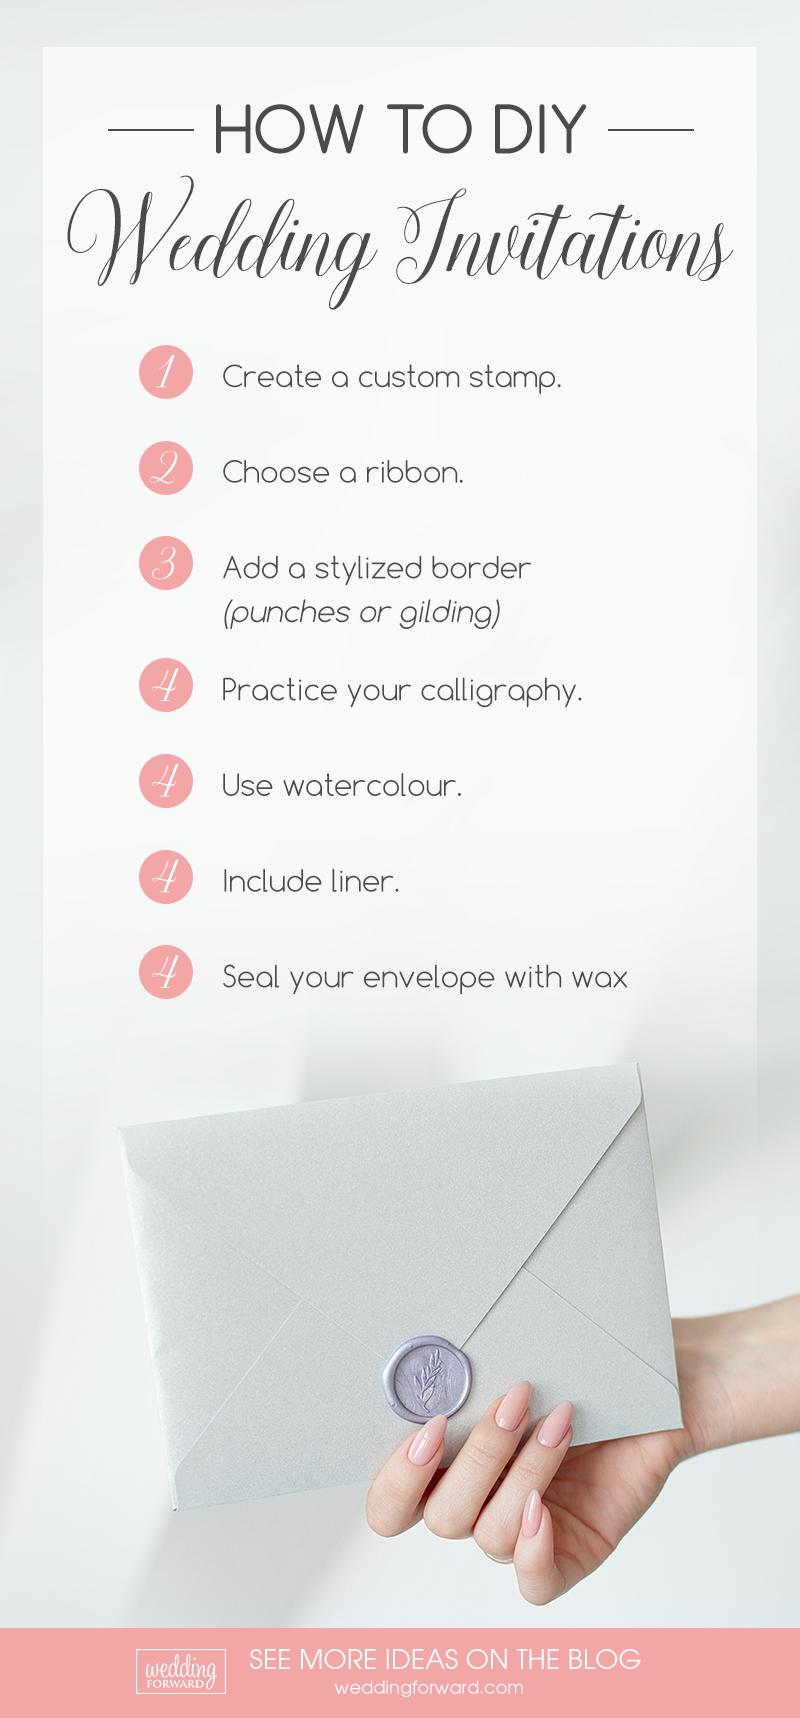 DIY Wedding Invitations infographic